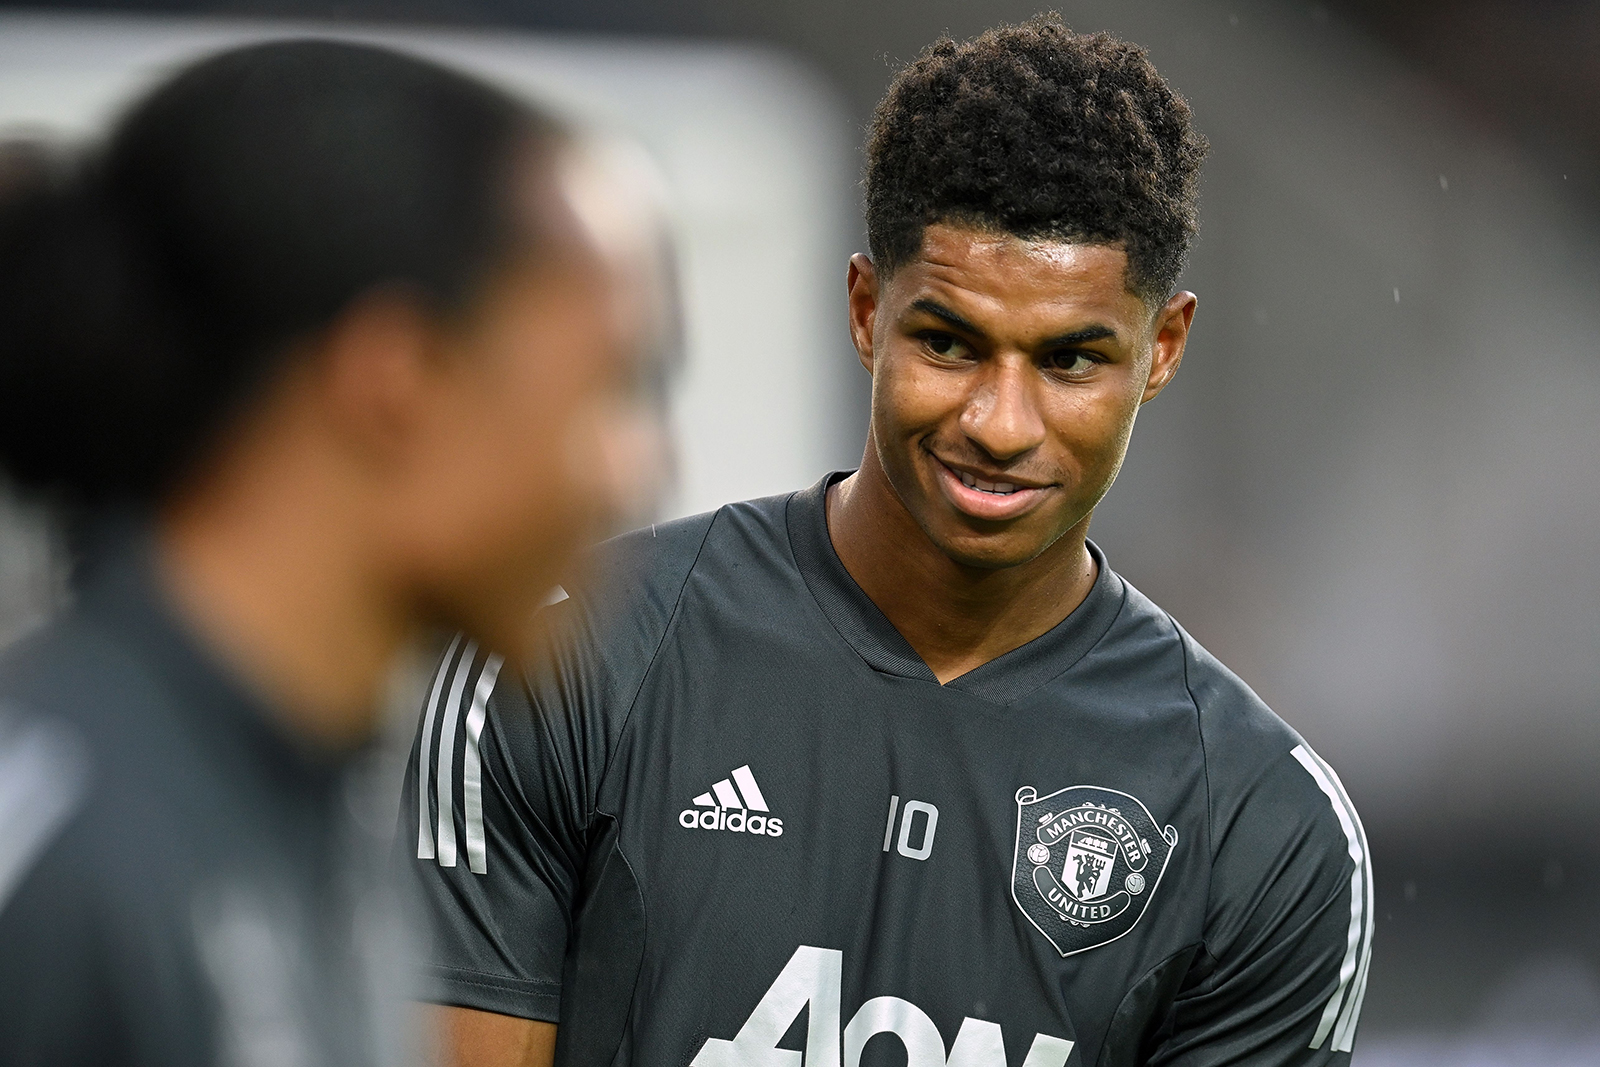 Marcus Rashford takes UK child poverty policy into his own hands